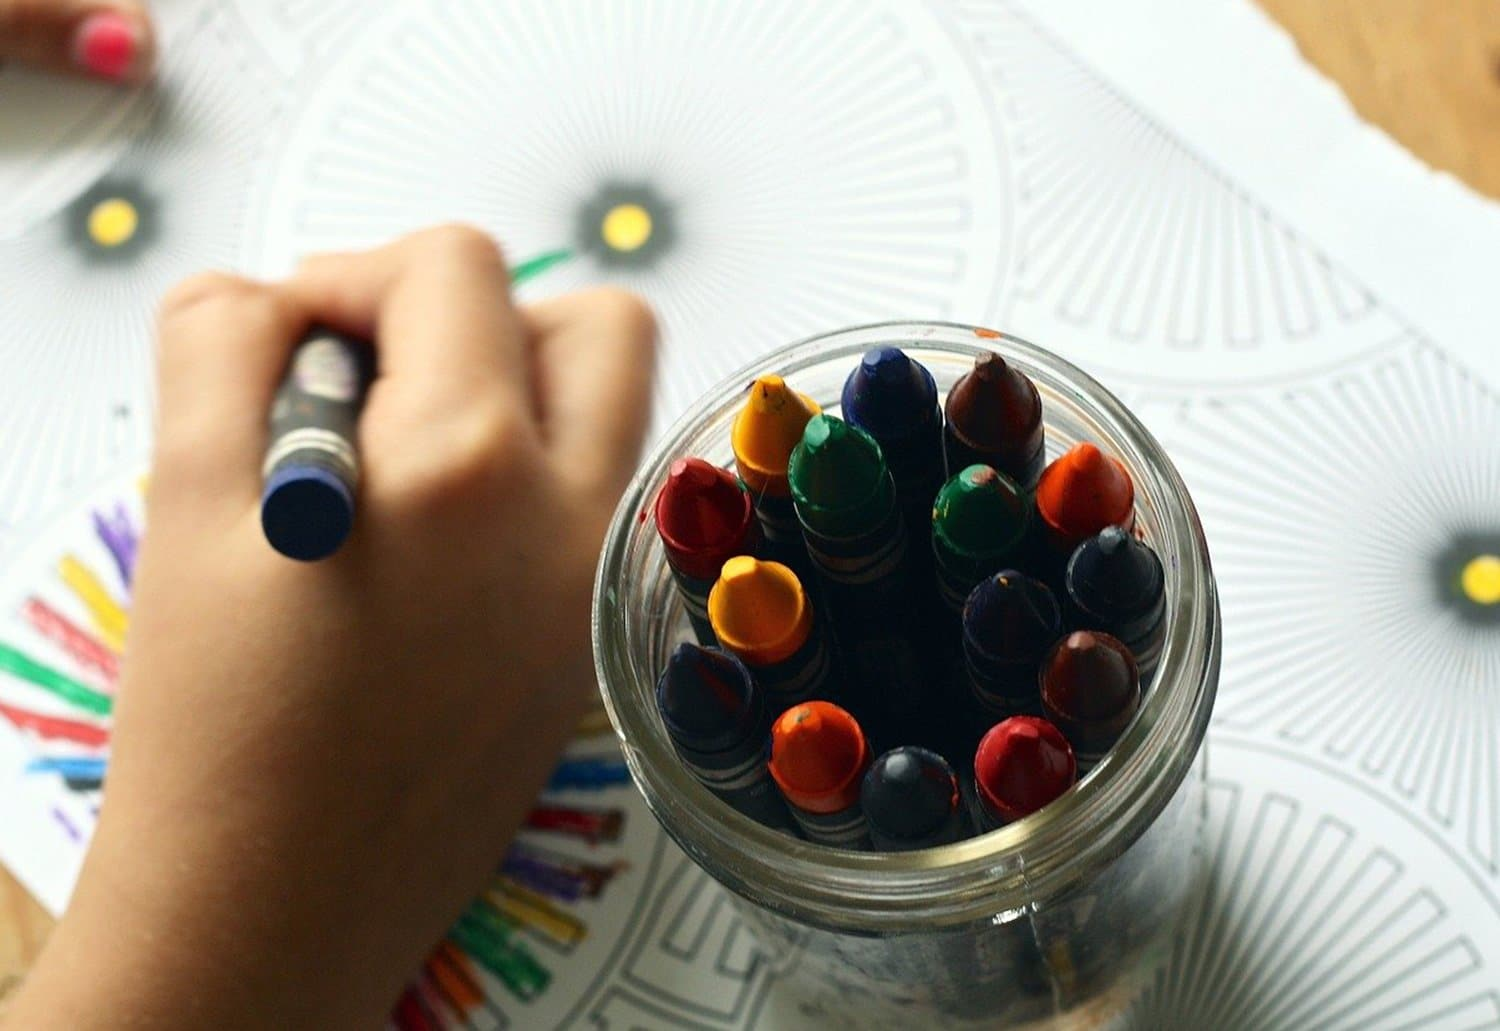 Branded Real Estate Coloring Books for the kids